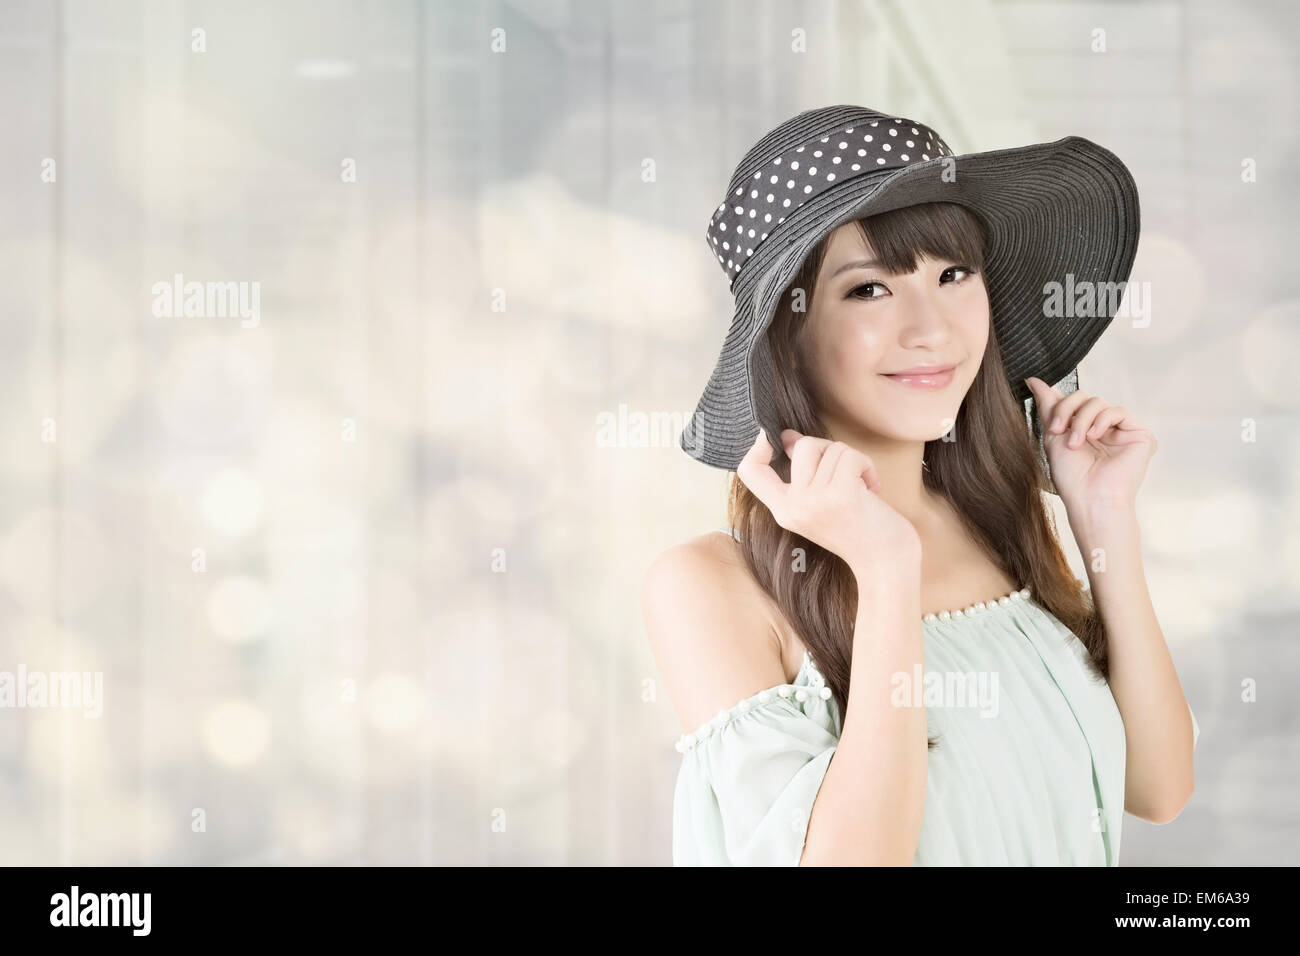 Elegant Asian Elegant Asian Woman With Hat Stock Photo Royalty Free Image